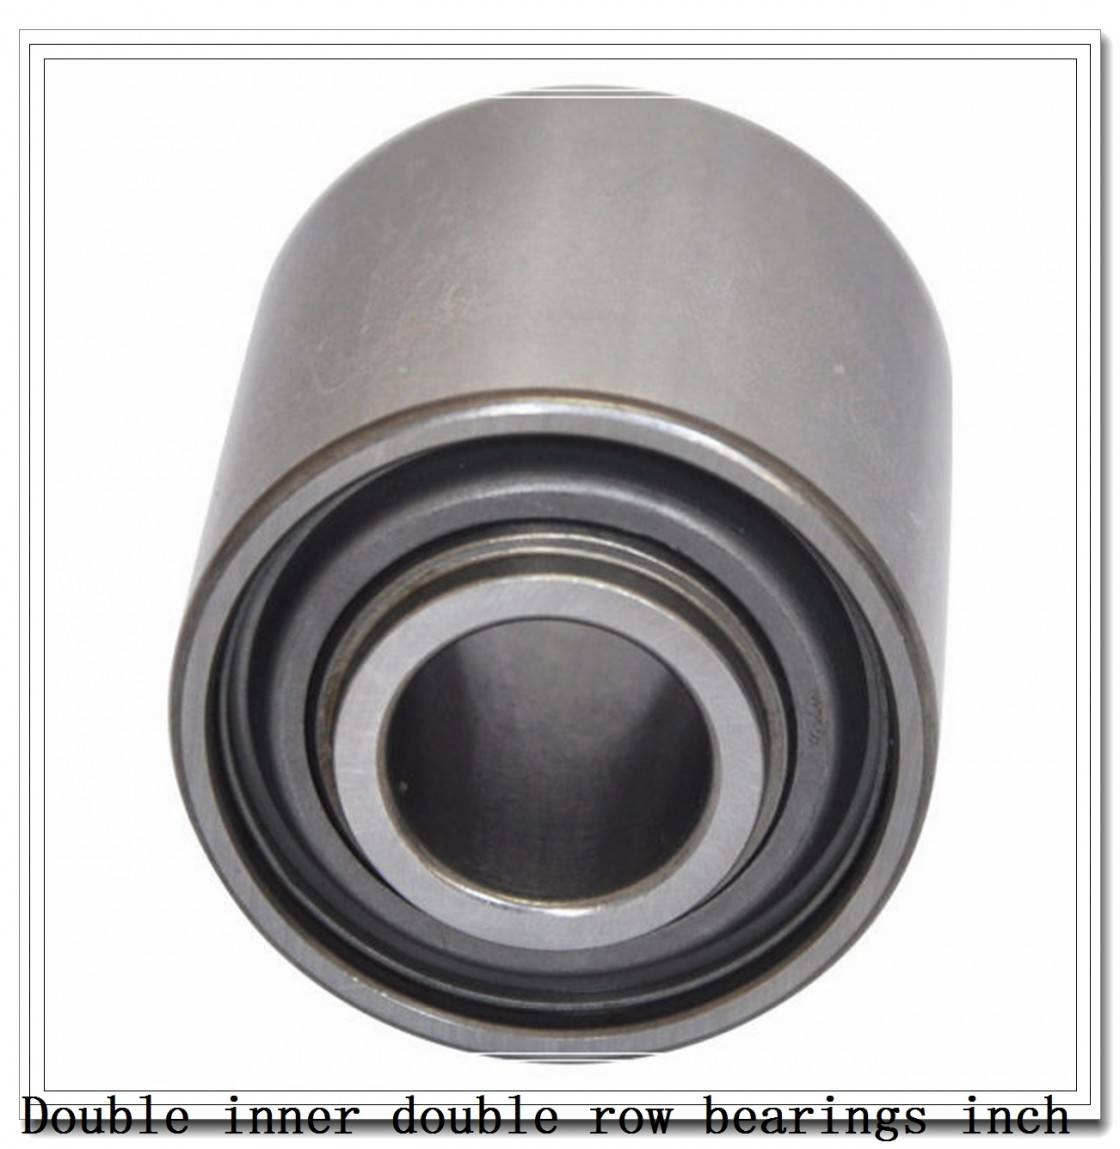 M667944/M667911D Double inner double row bearings inch